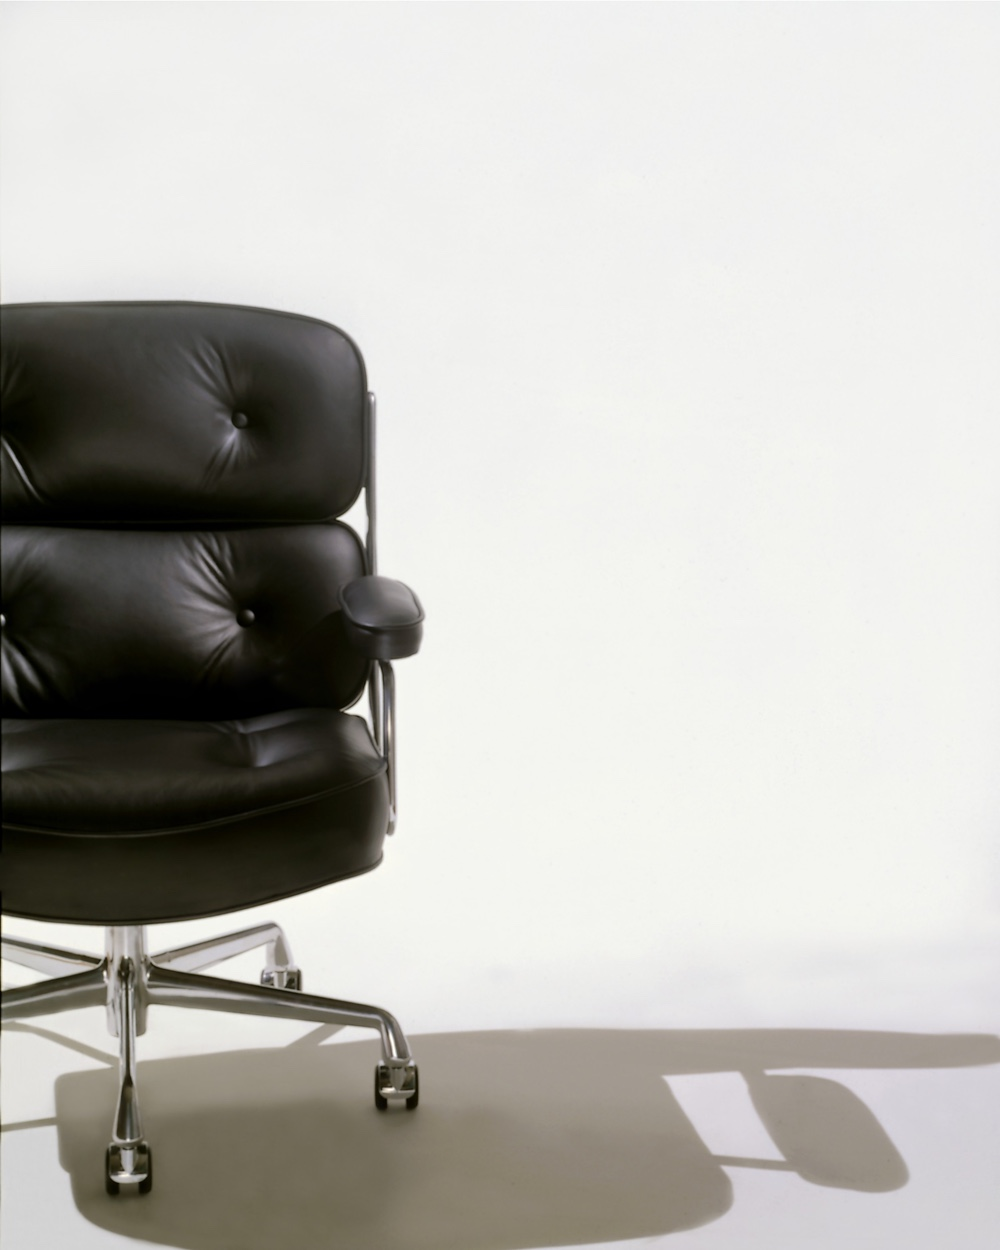 TheEames Executive Chair.Image© 2016 Herman Miller, Inc.